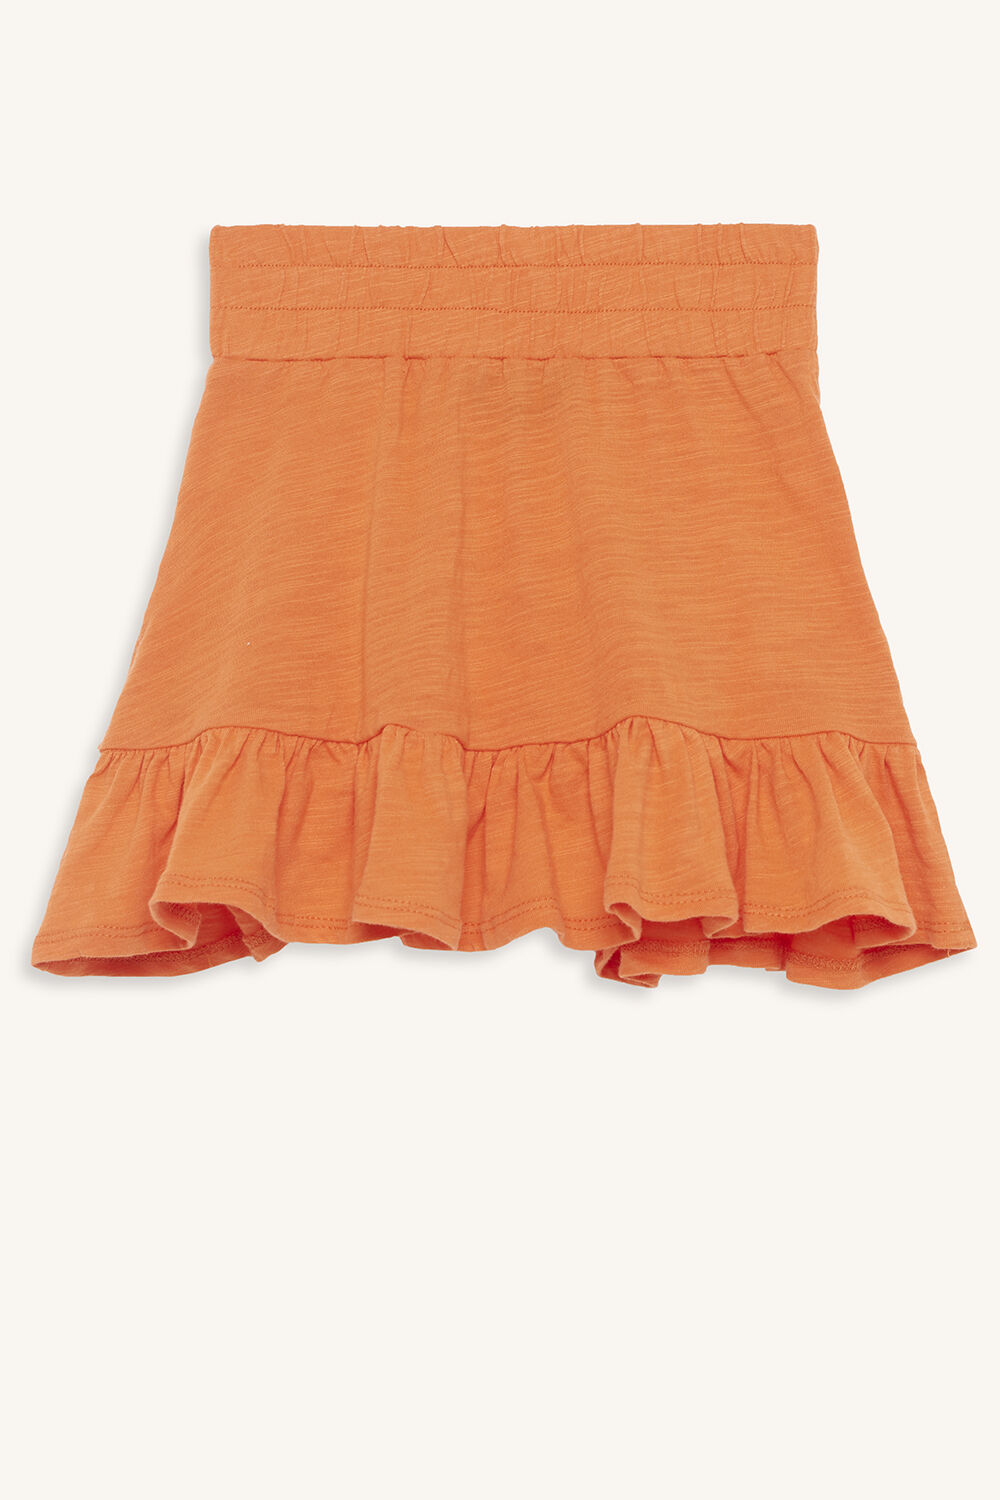 KARA RUFFLE SKIRT in colour MANDARIN RED